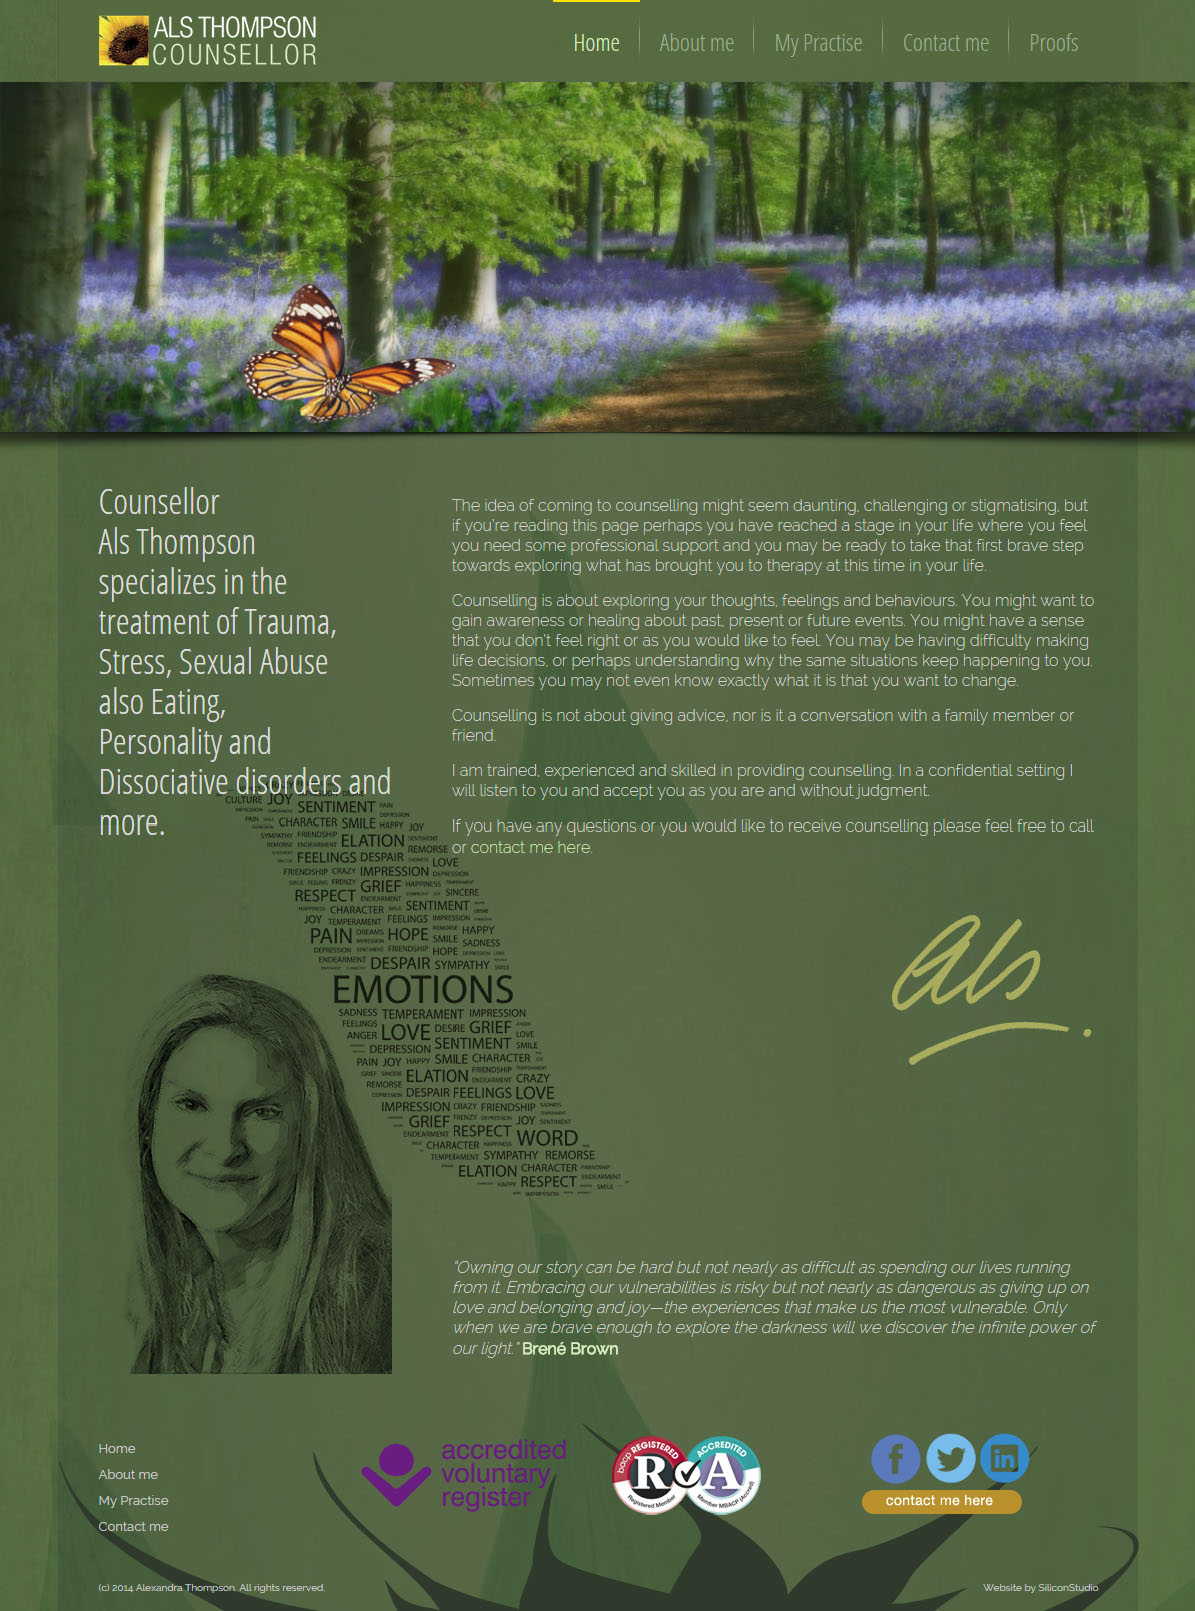 Als Thompson website design